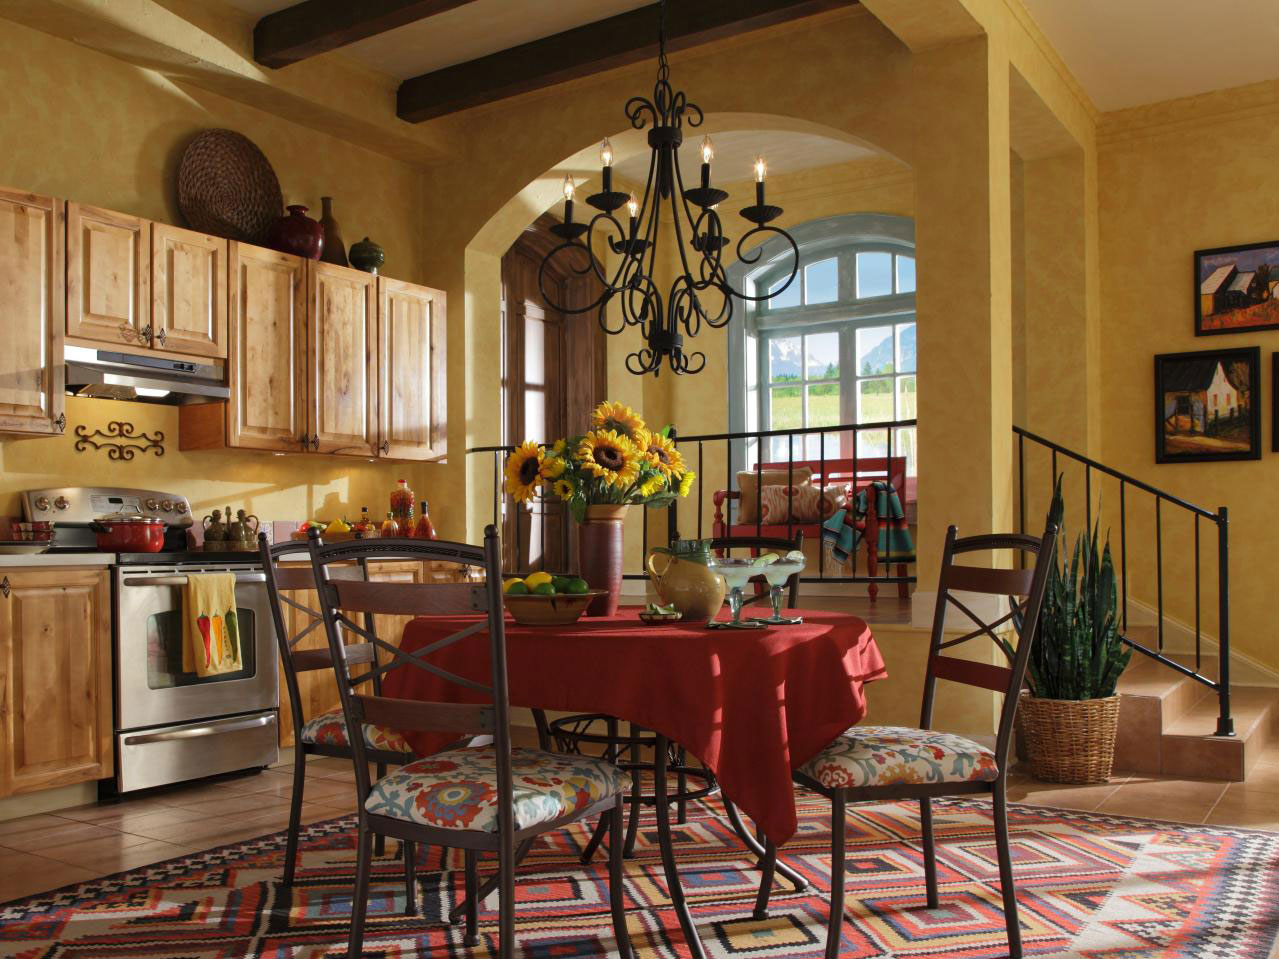 southwestern interior design style and decorating ideas 9 - Southwestern Design Ideas